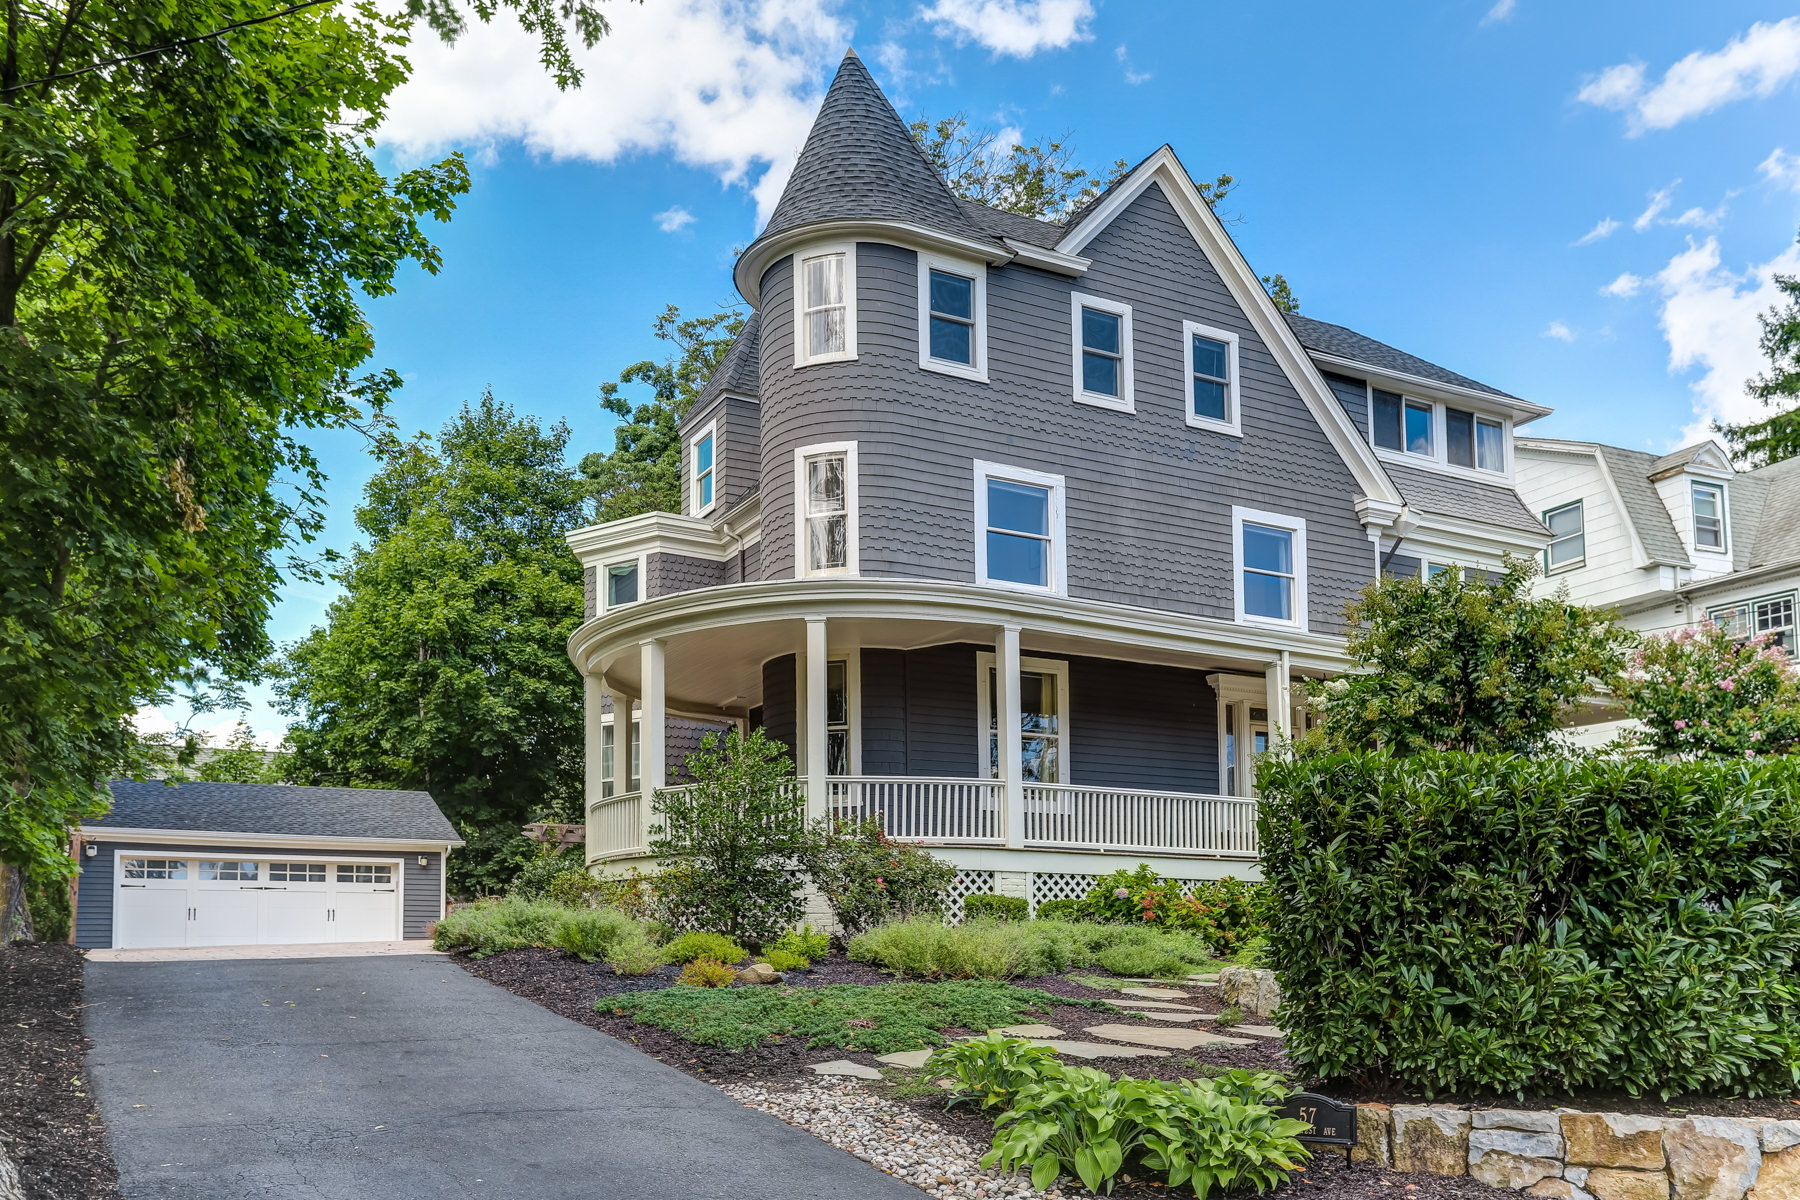 New Listing For Sale In Summit Nj 57 Deforest Ave Summit Nj 07901